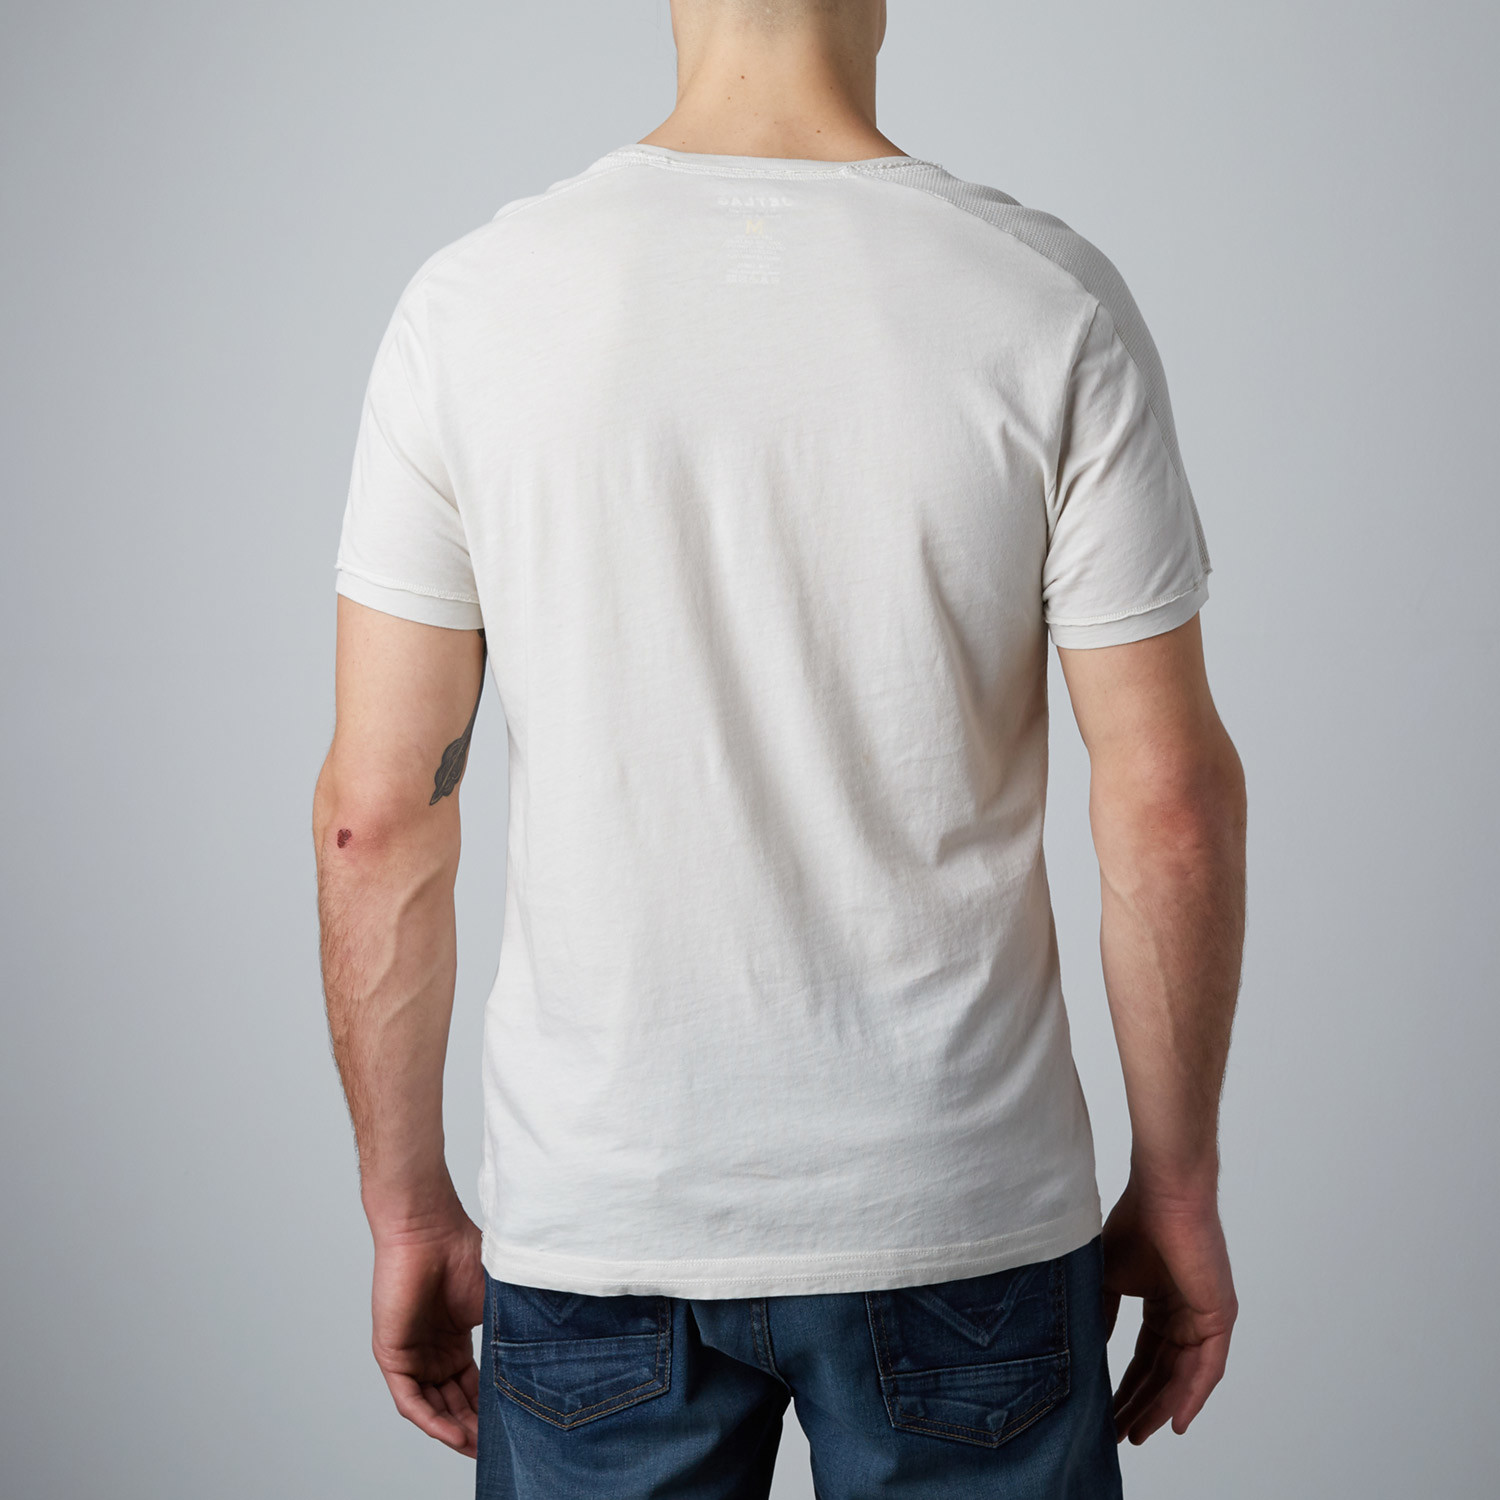 Thermal Shoulder T Shirt Off White S Jetlag Touch